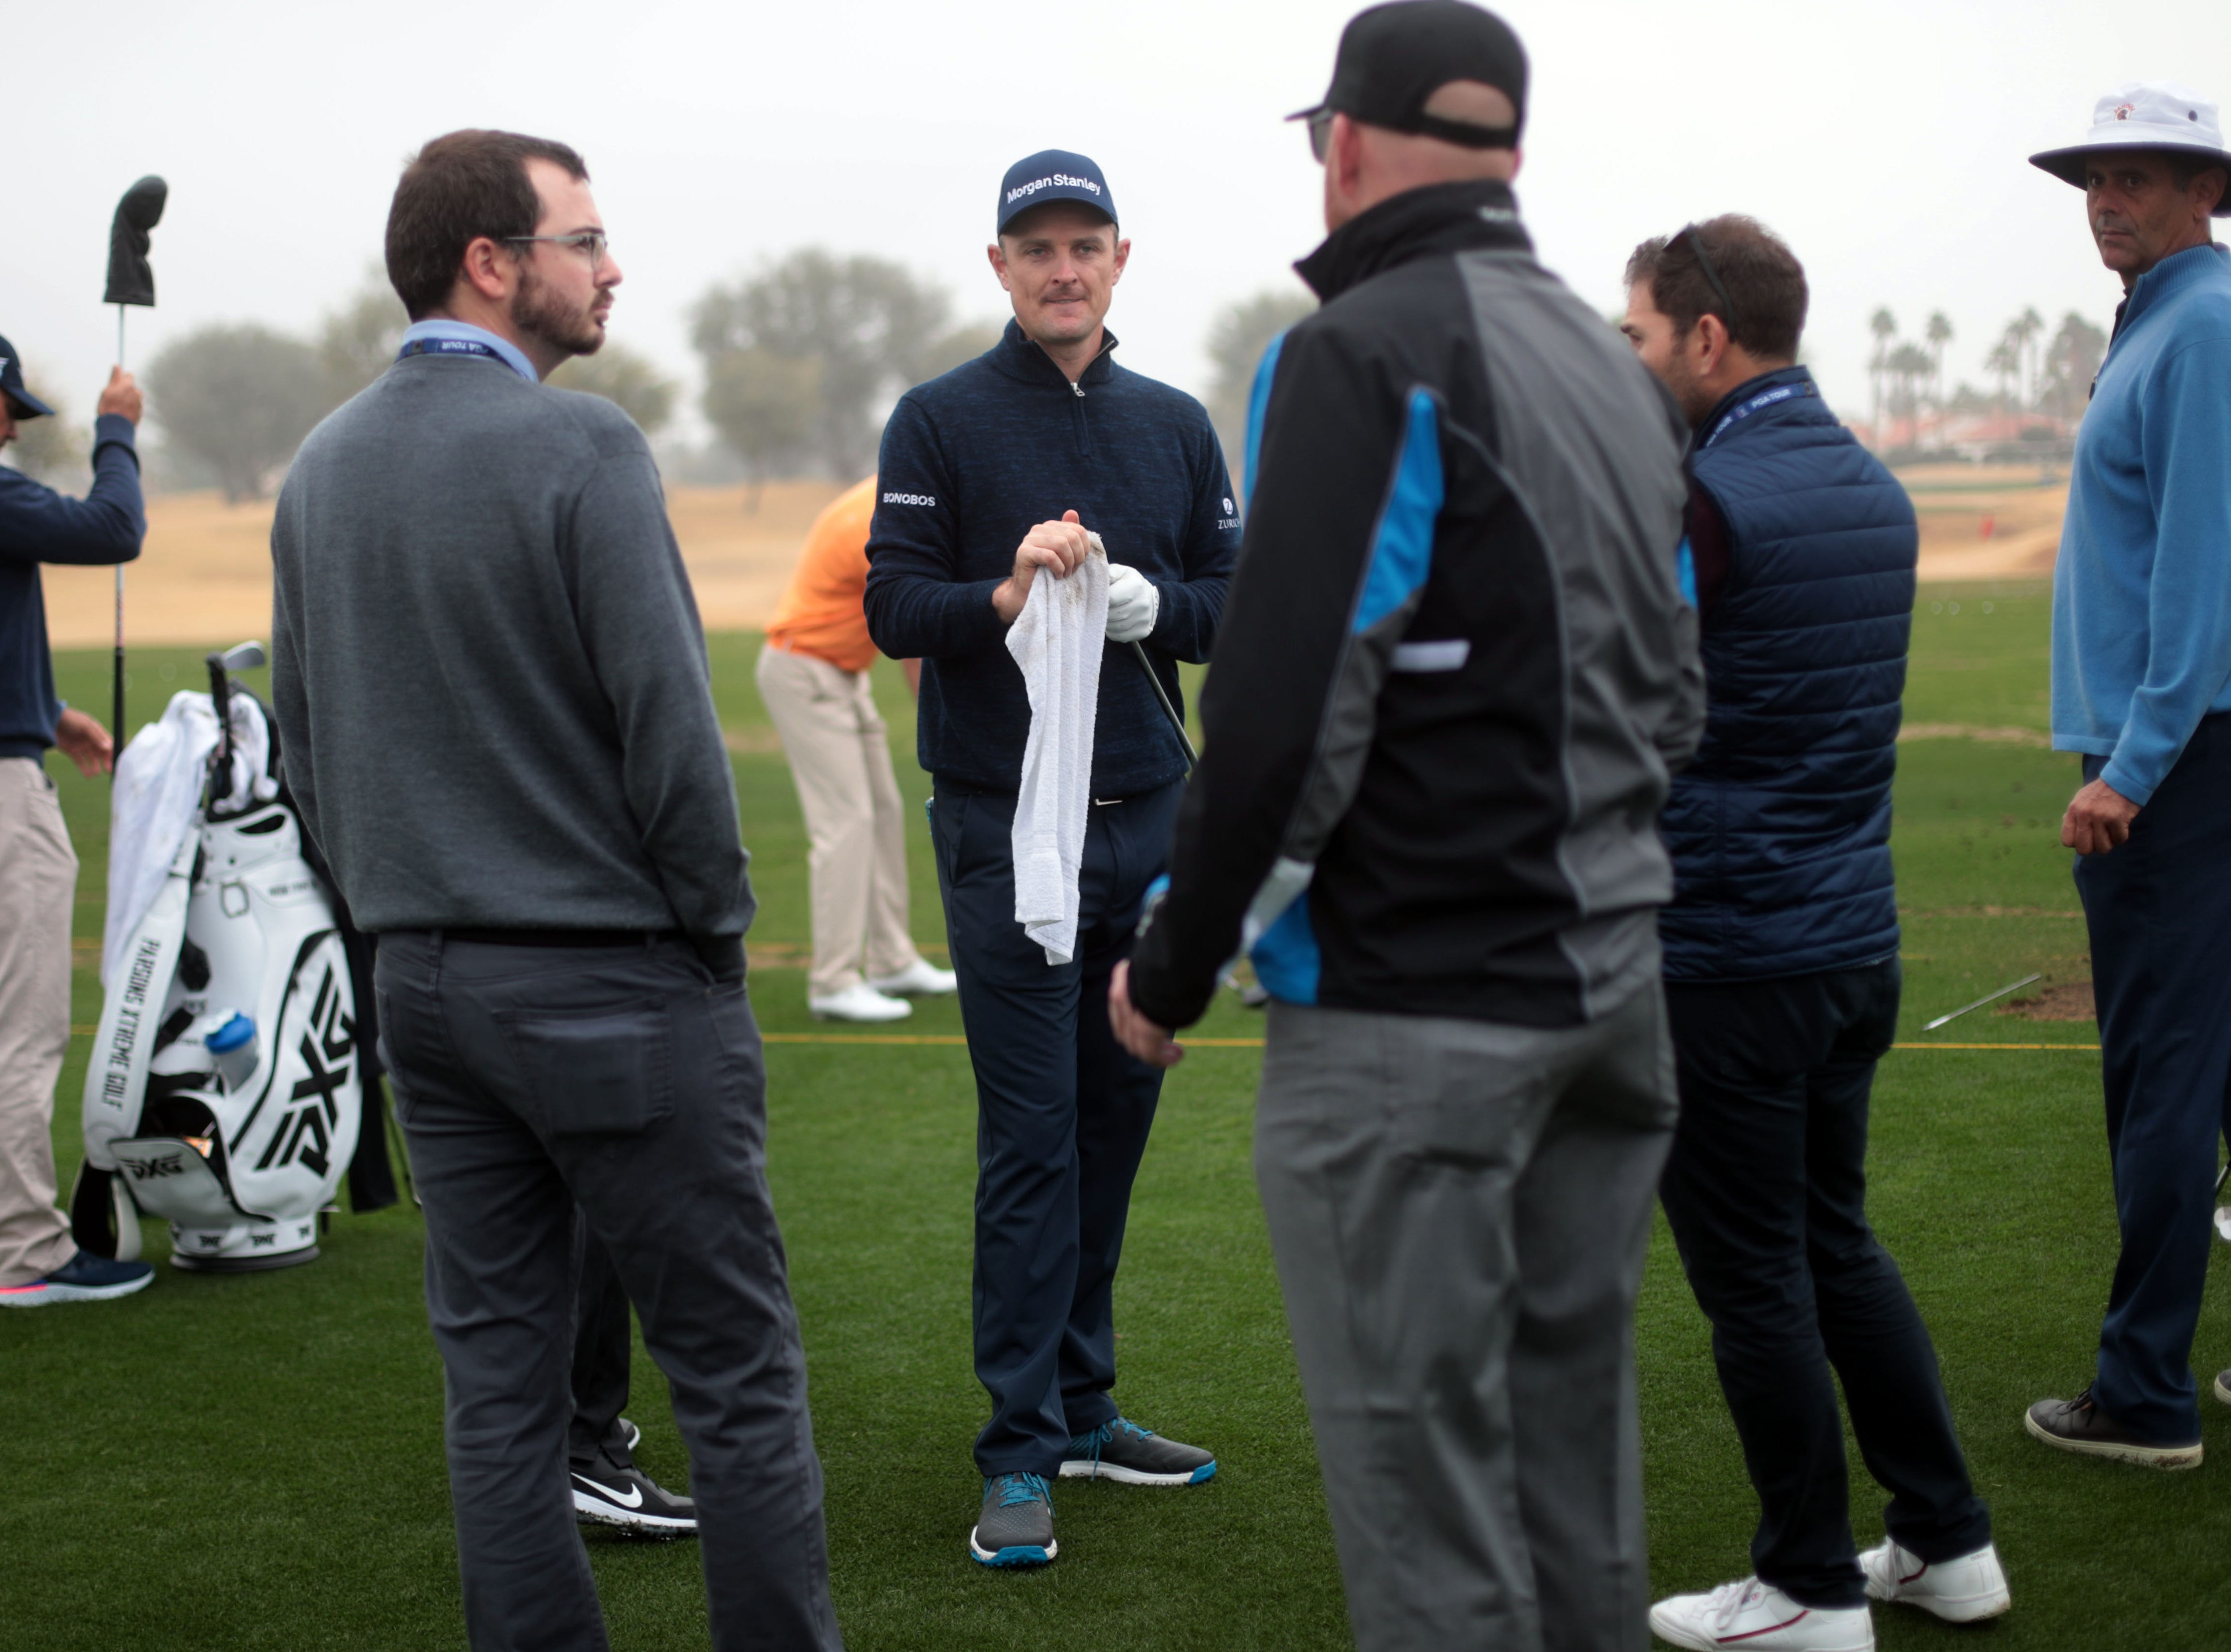 Justin Rose, center, on the driving range at the Desert Classic on Wednesday, January 16, 2019 in La Quinta.